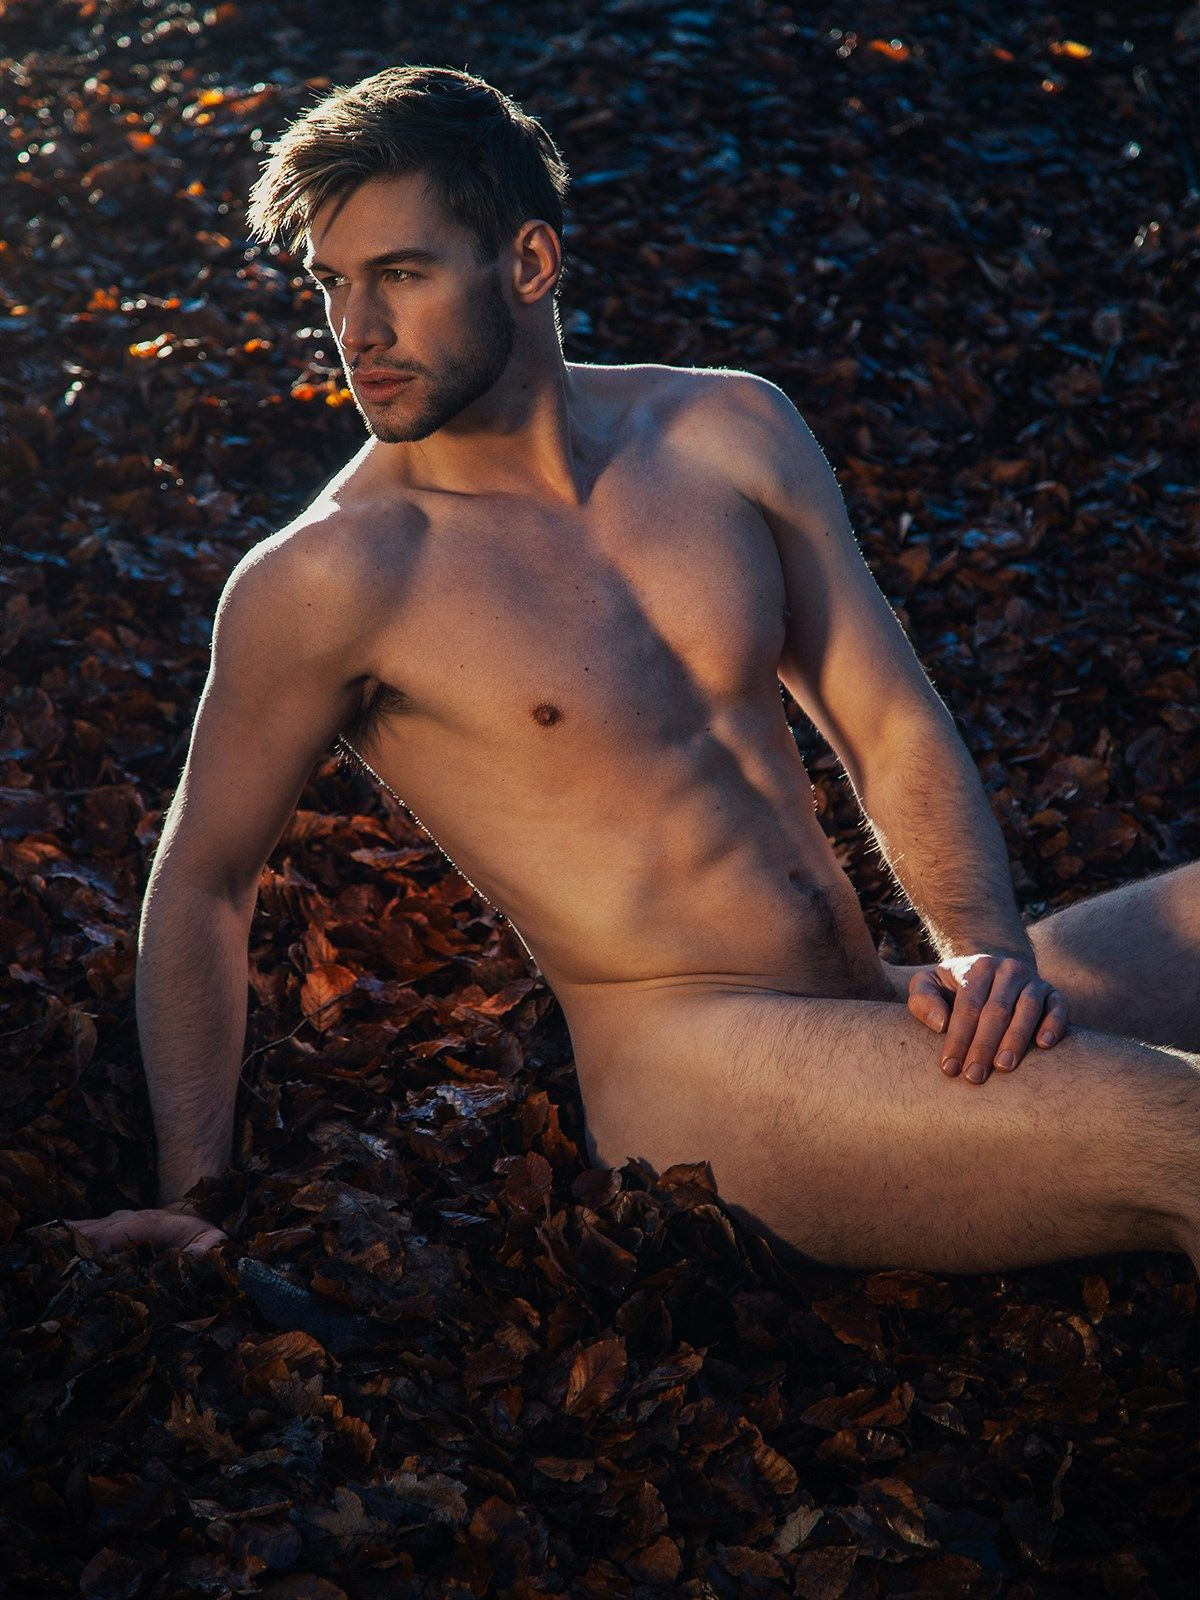 girls-hot-guy-nude-actor-picture-blog